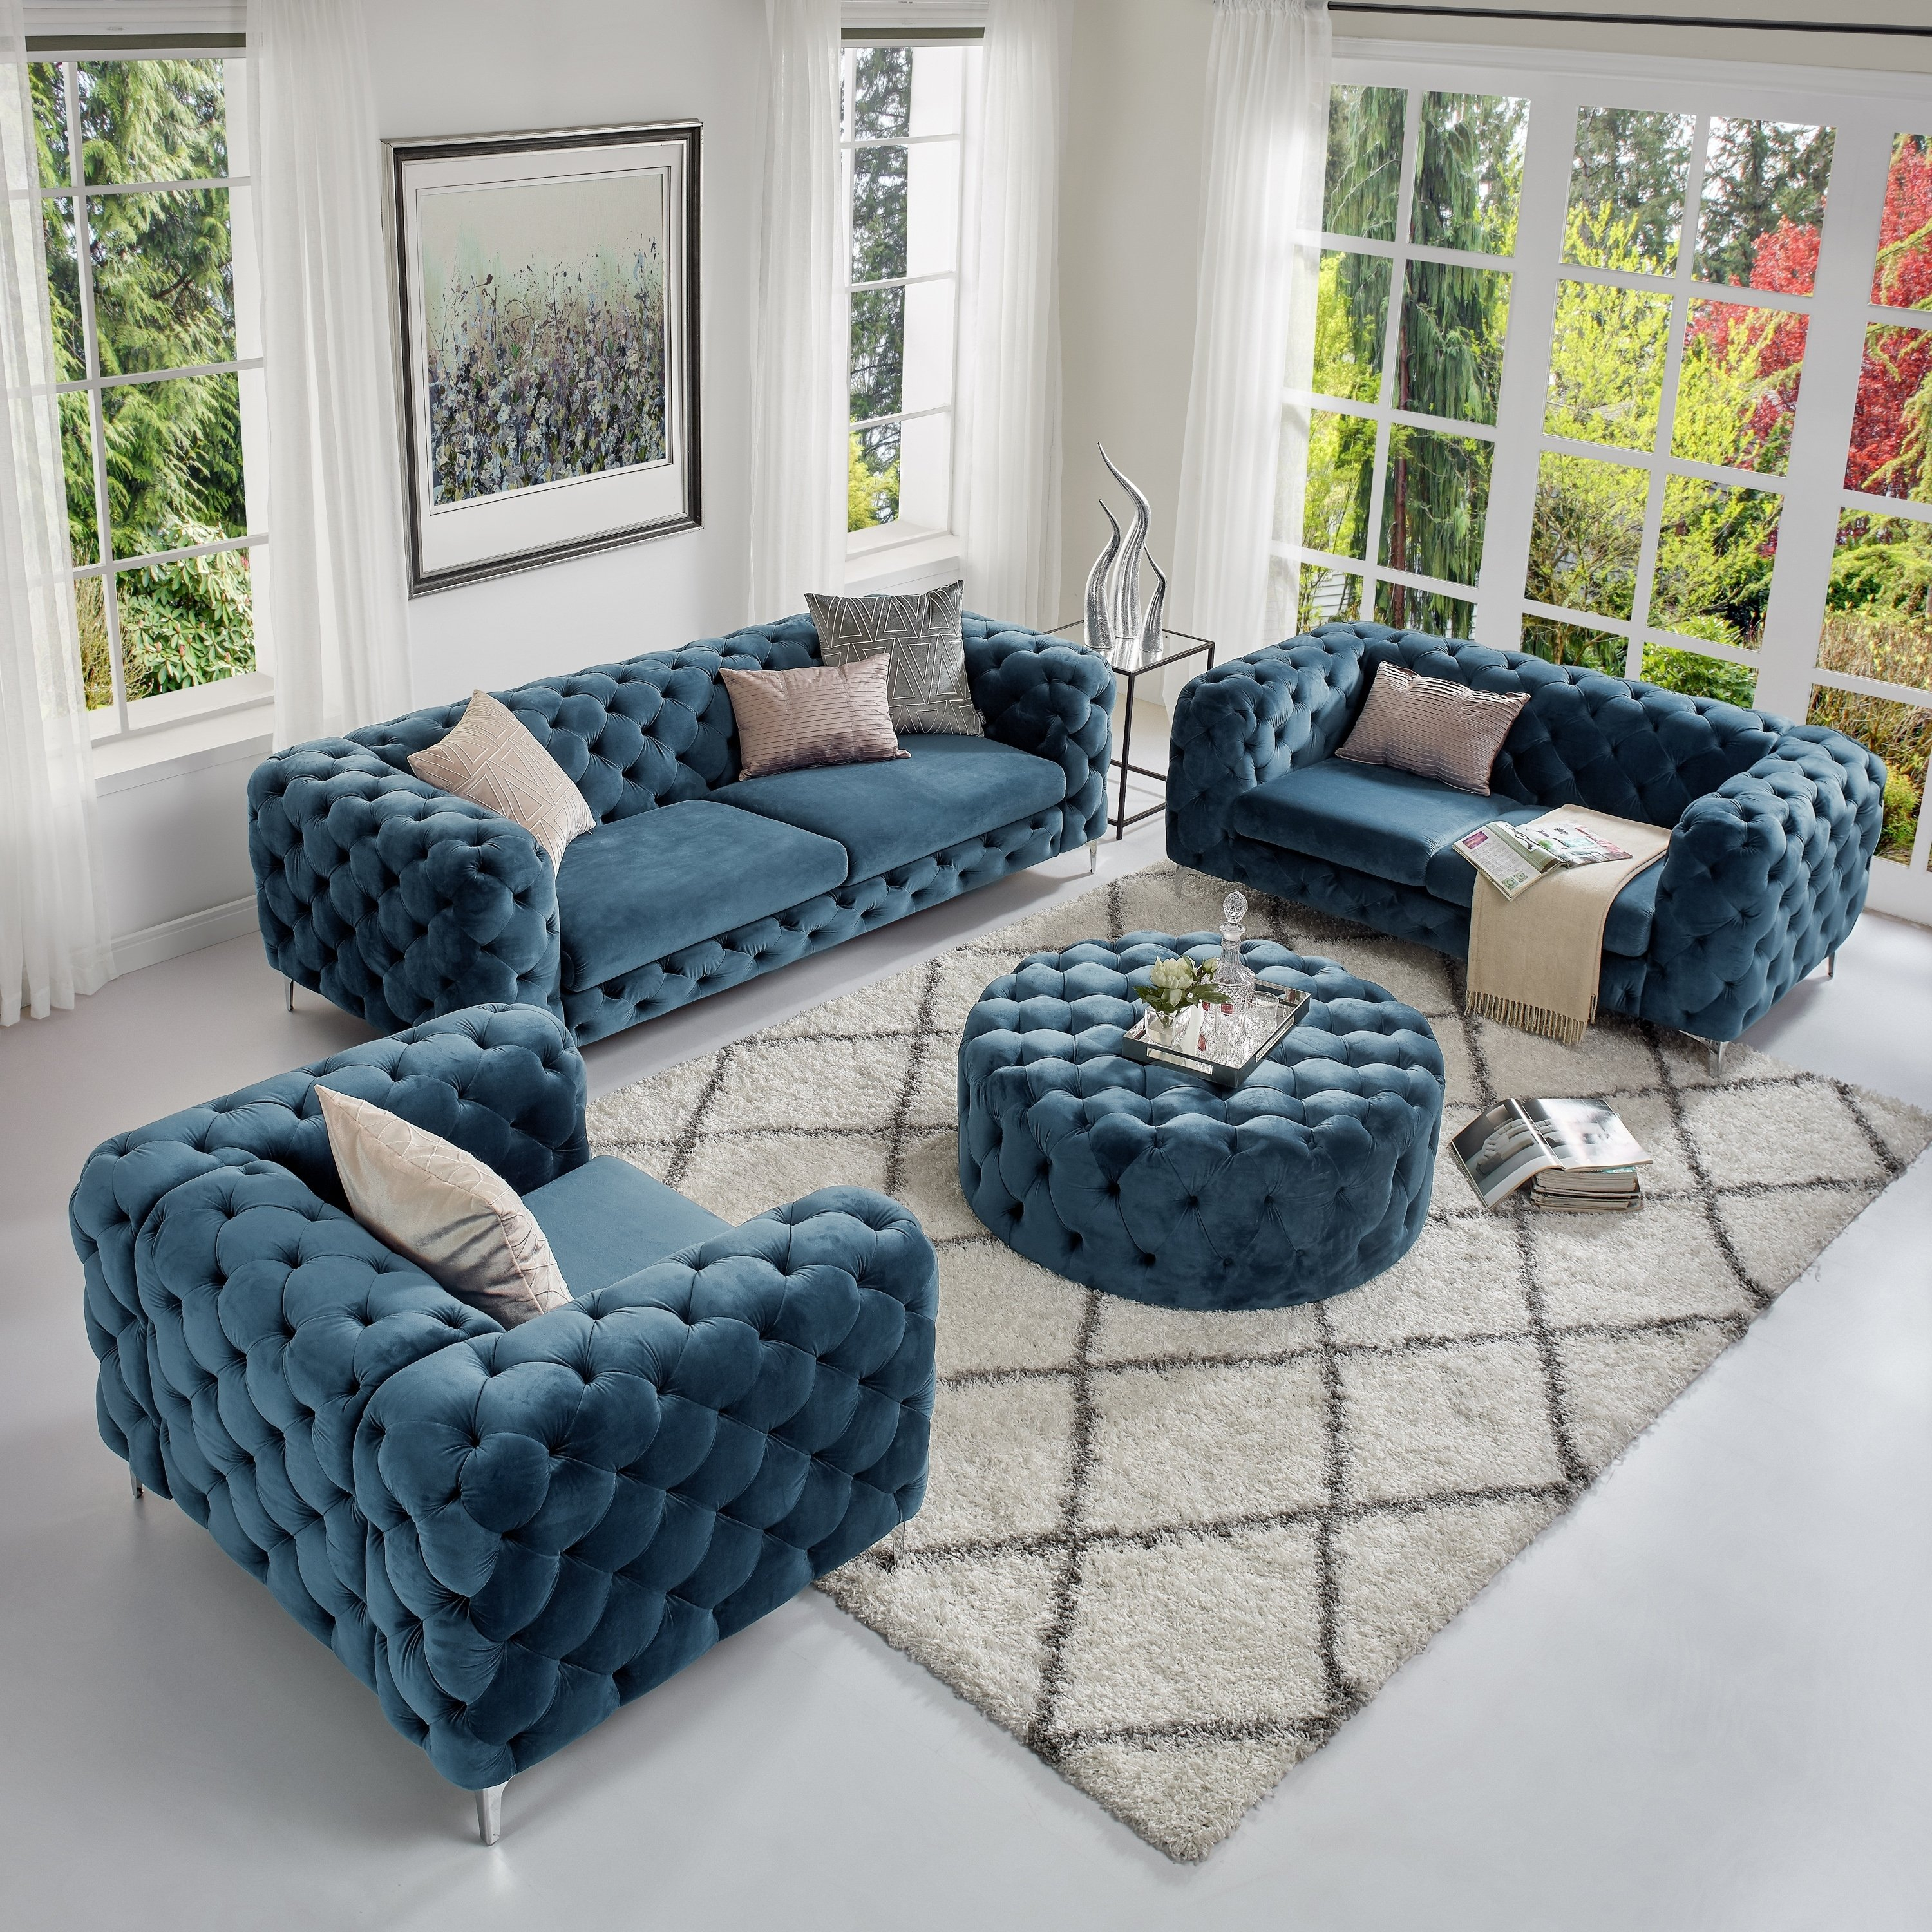 Shop Corvus Aosta Tufted Velvet Sofa Living Room Set With Ottoman intended for 12 Smart Designs of How to Build Tufted Living Room Set